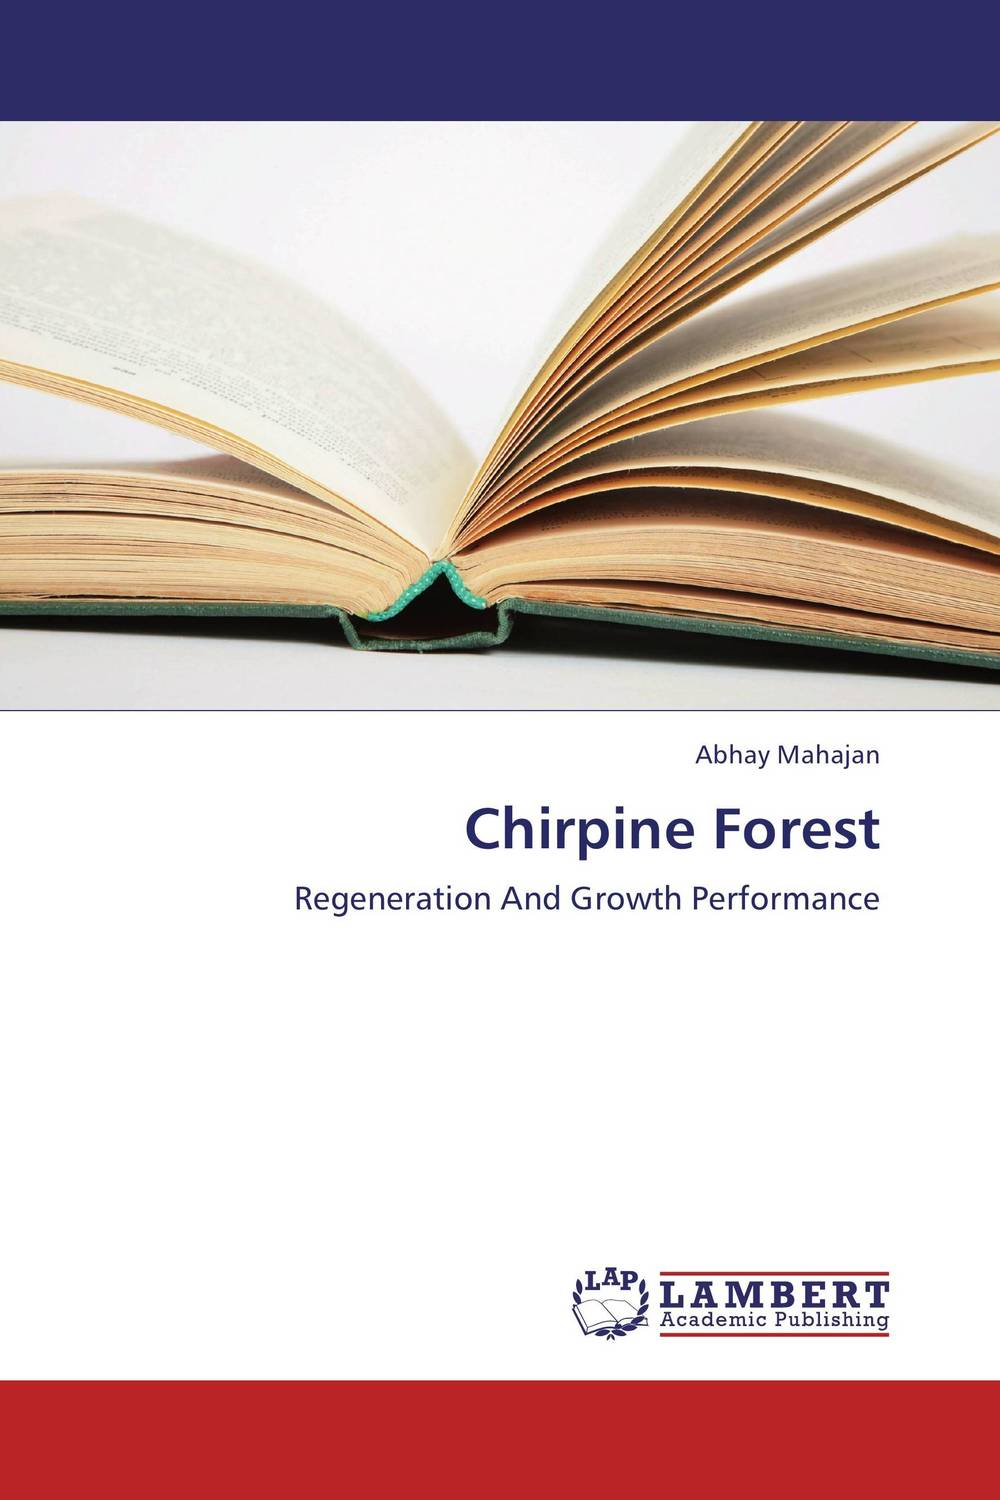 Chirpine Forest manuscript found in accra